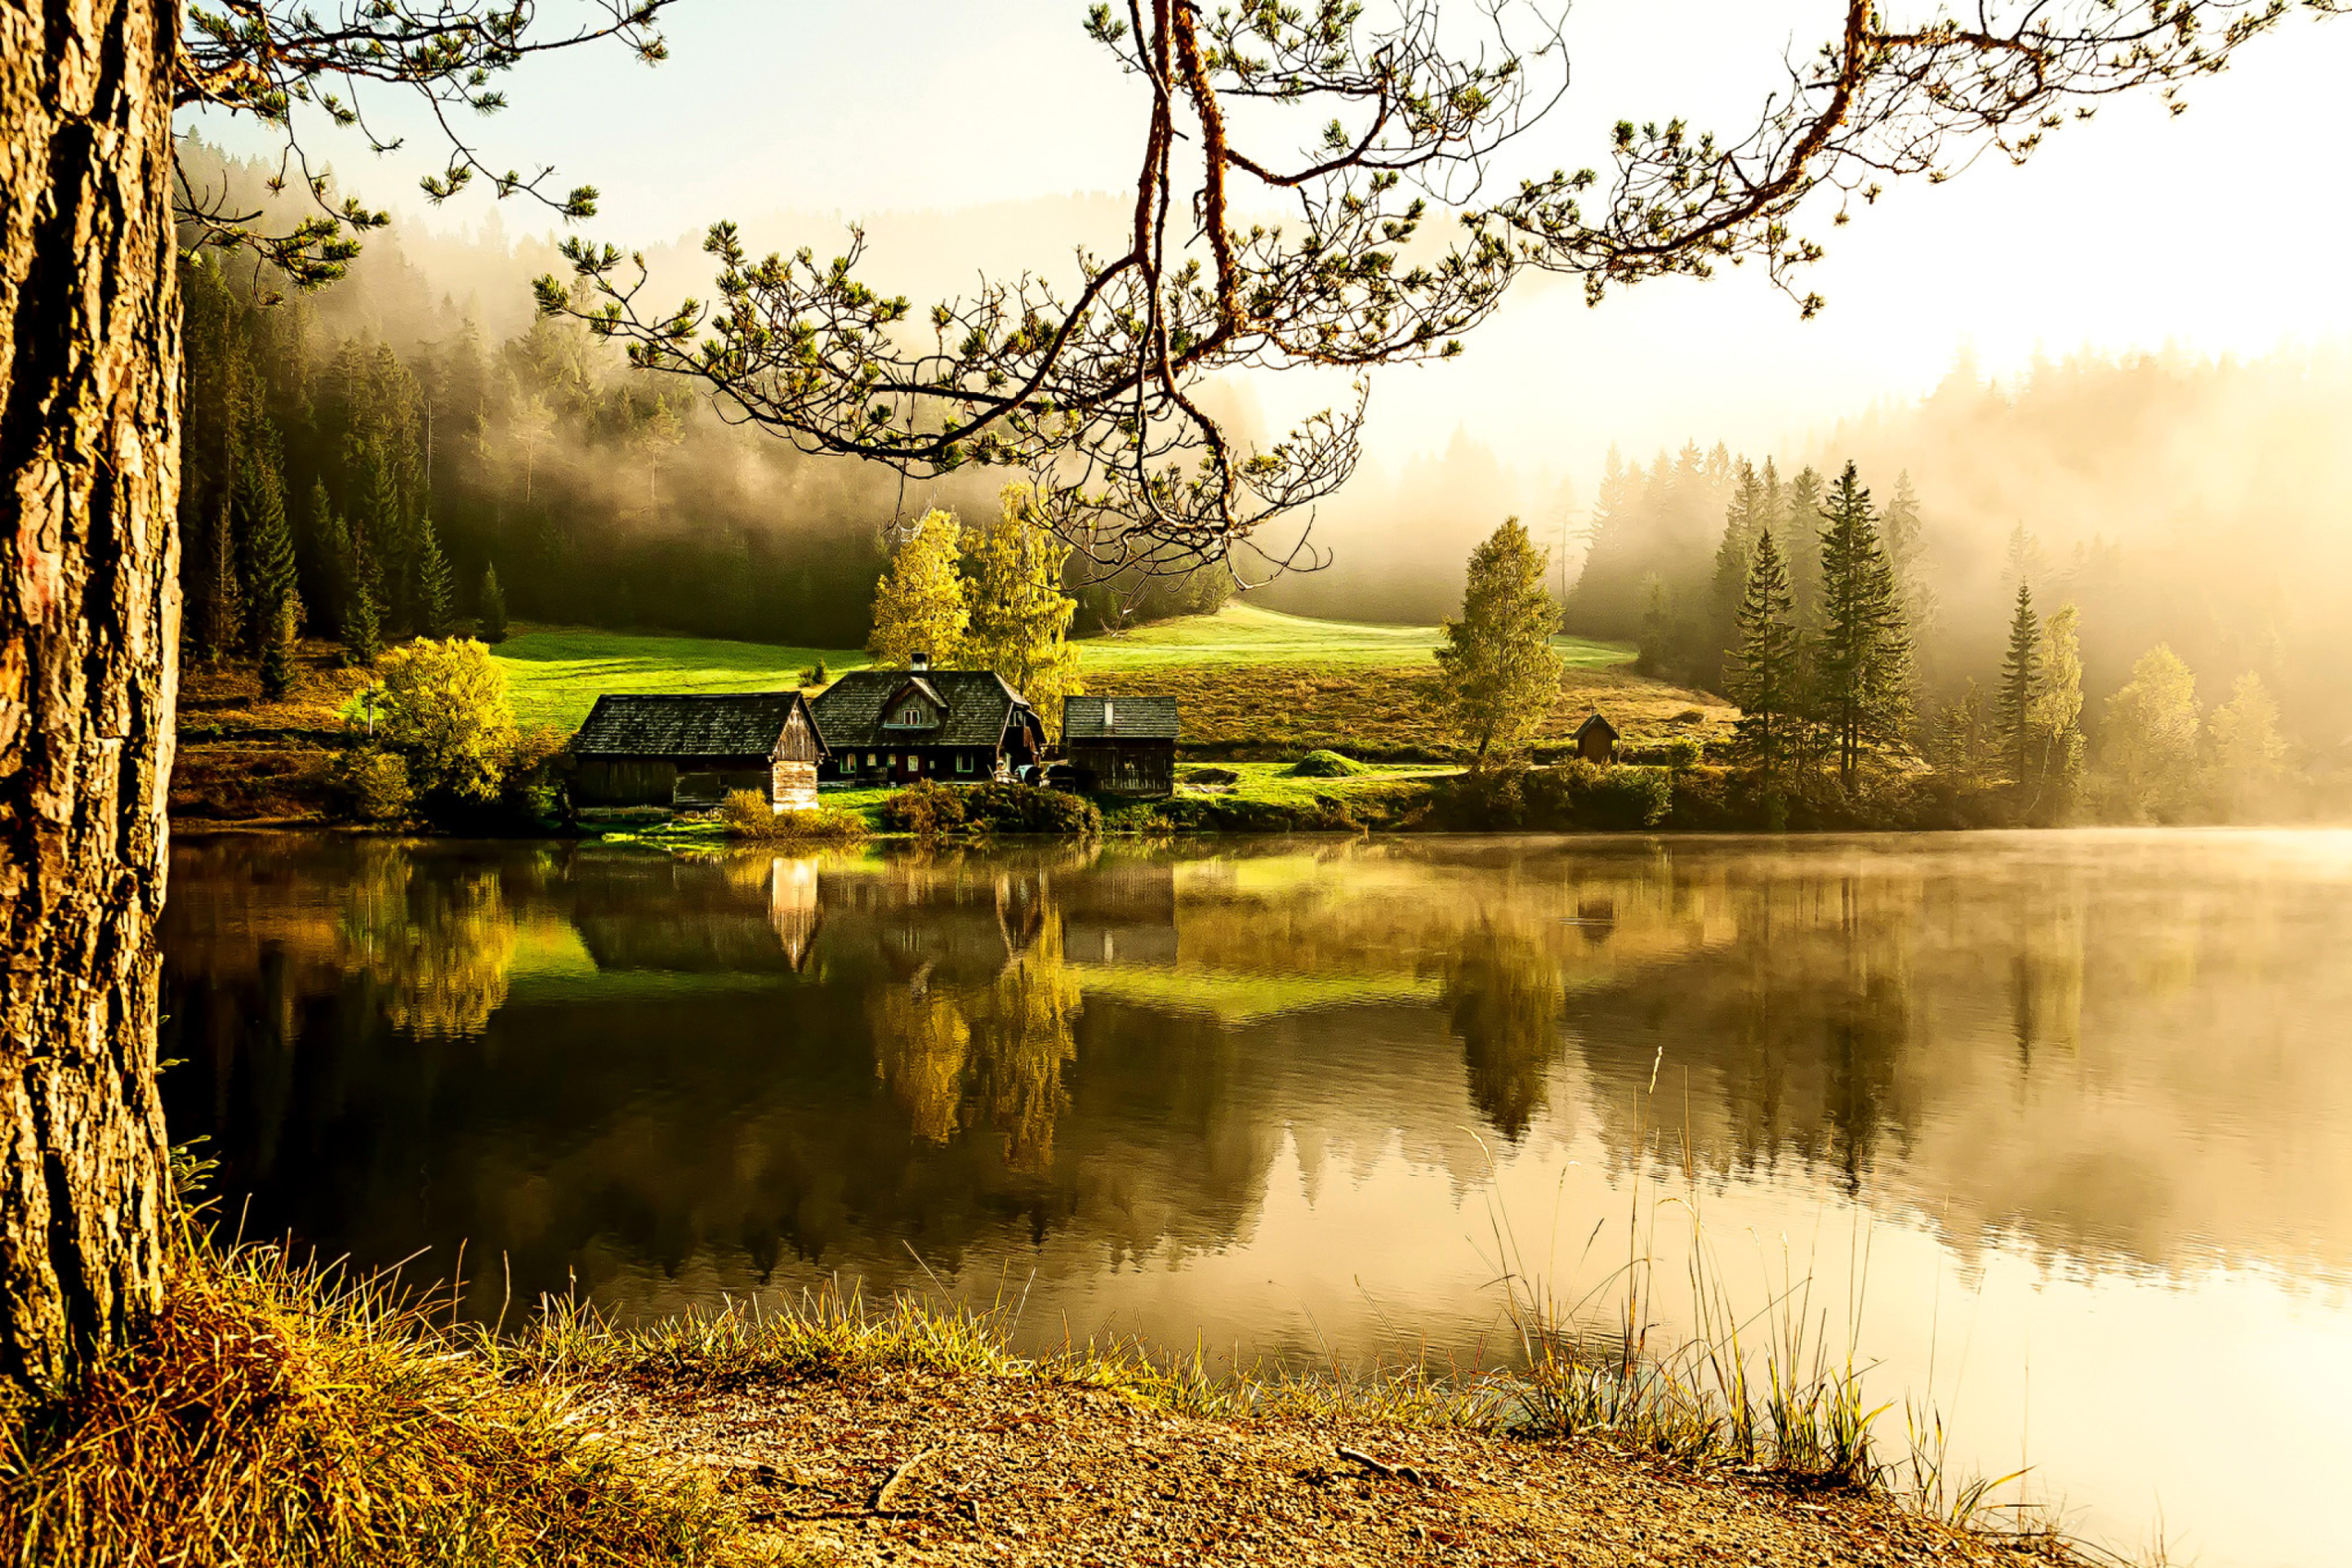 Beautiful Countryside Scenery Wallpaper for 2880x1920